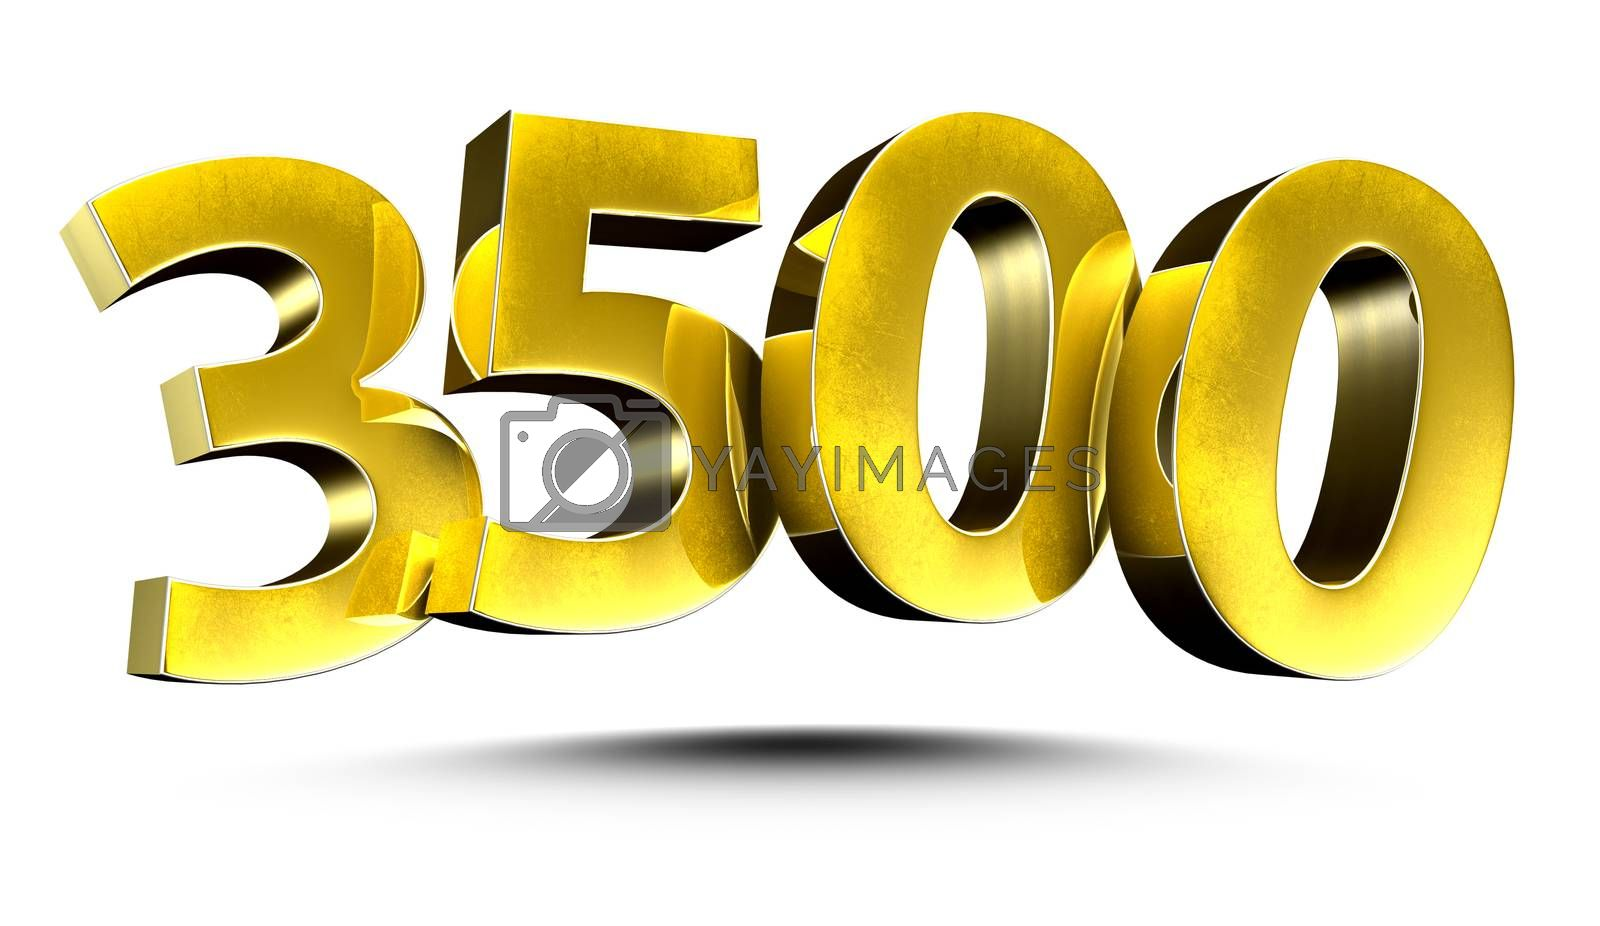 3D illustration Numbers 3500 Gold isolated on a white background.(with Clipping Path)